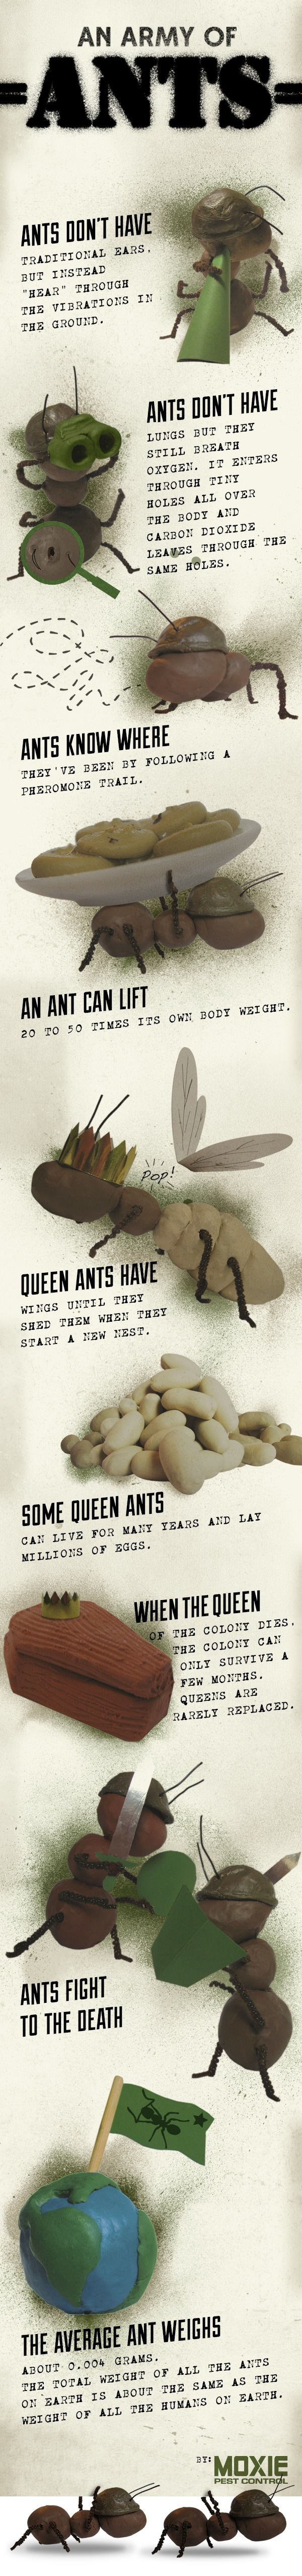 Natural remedies to get rid of ants and spiders earthday home natural remedies to get rid of ants and spiders earthday ccuart Choice Image